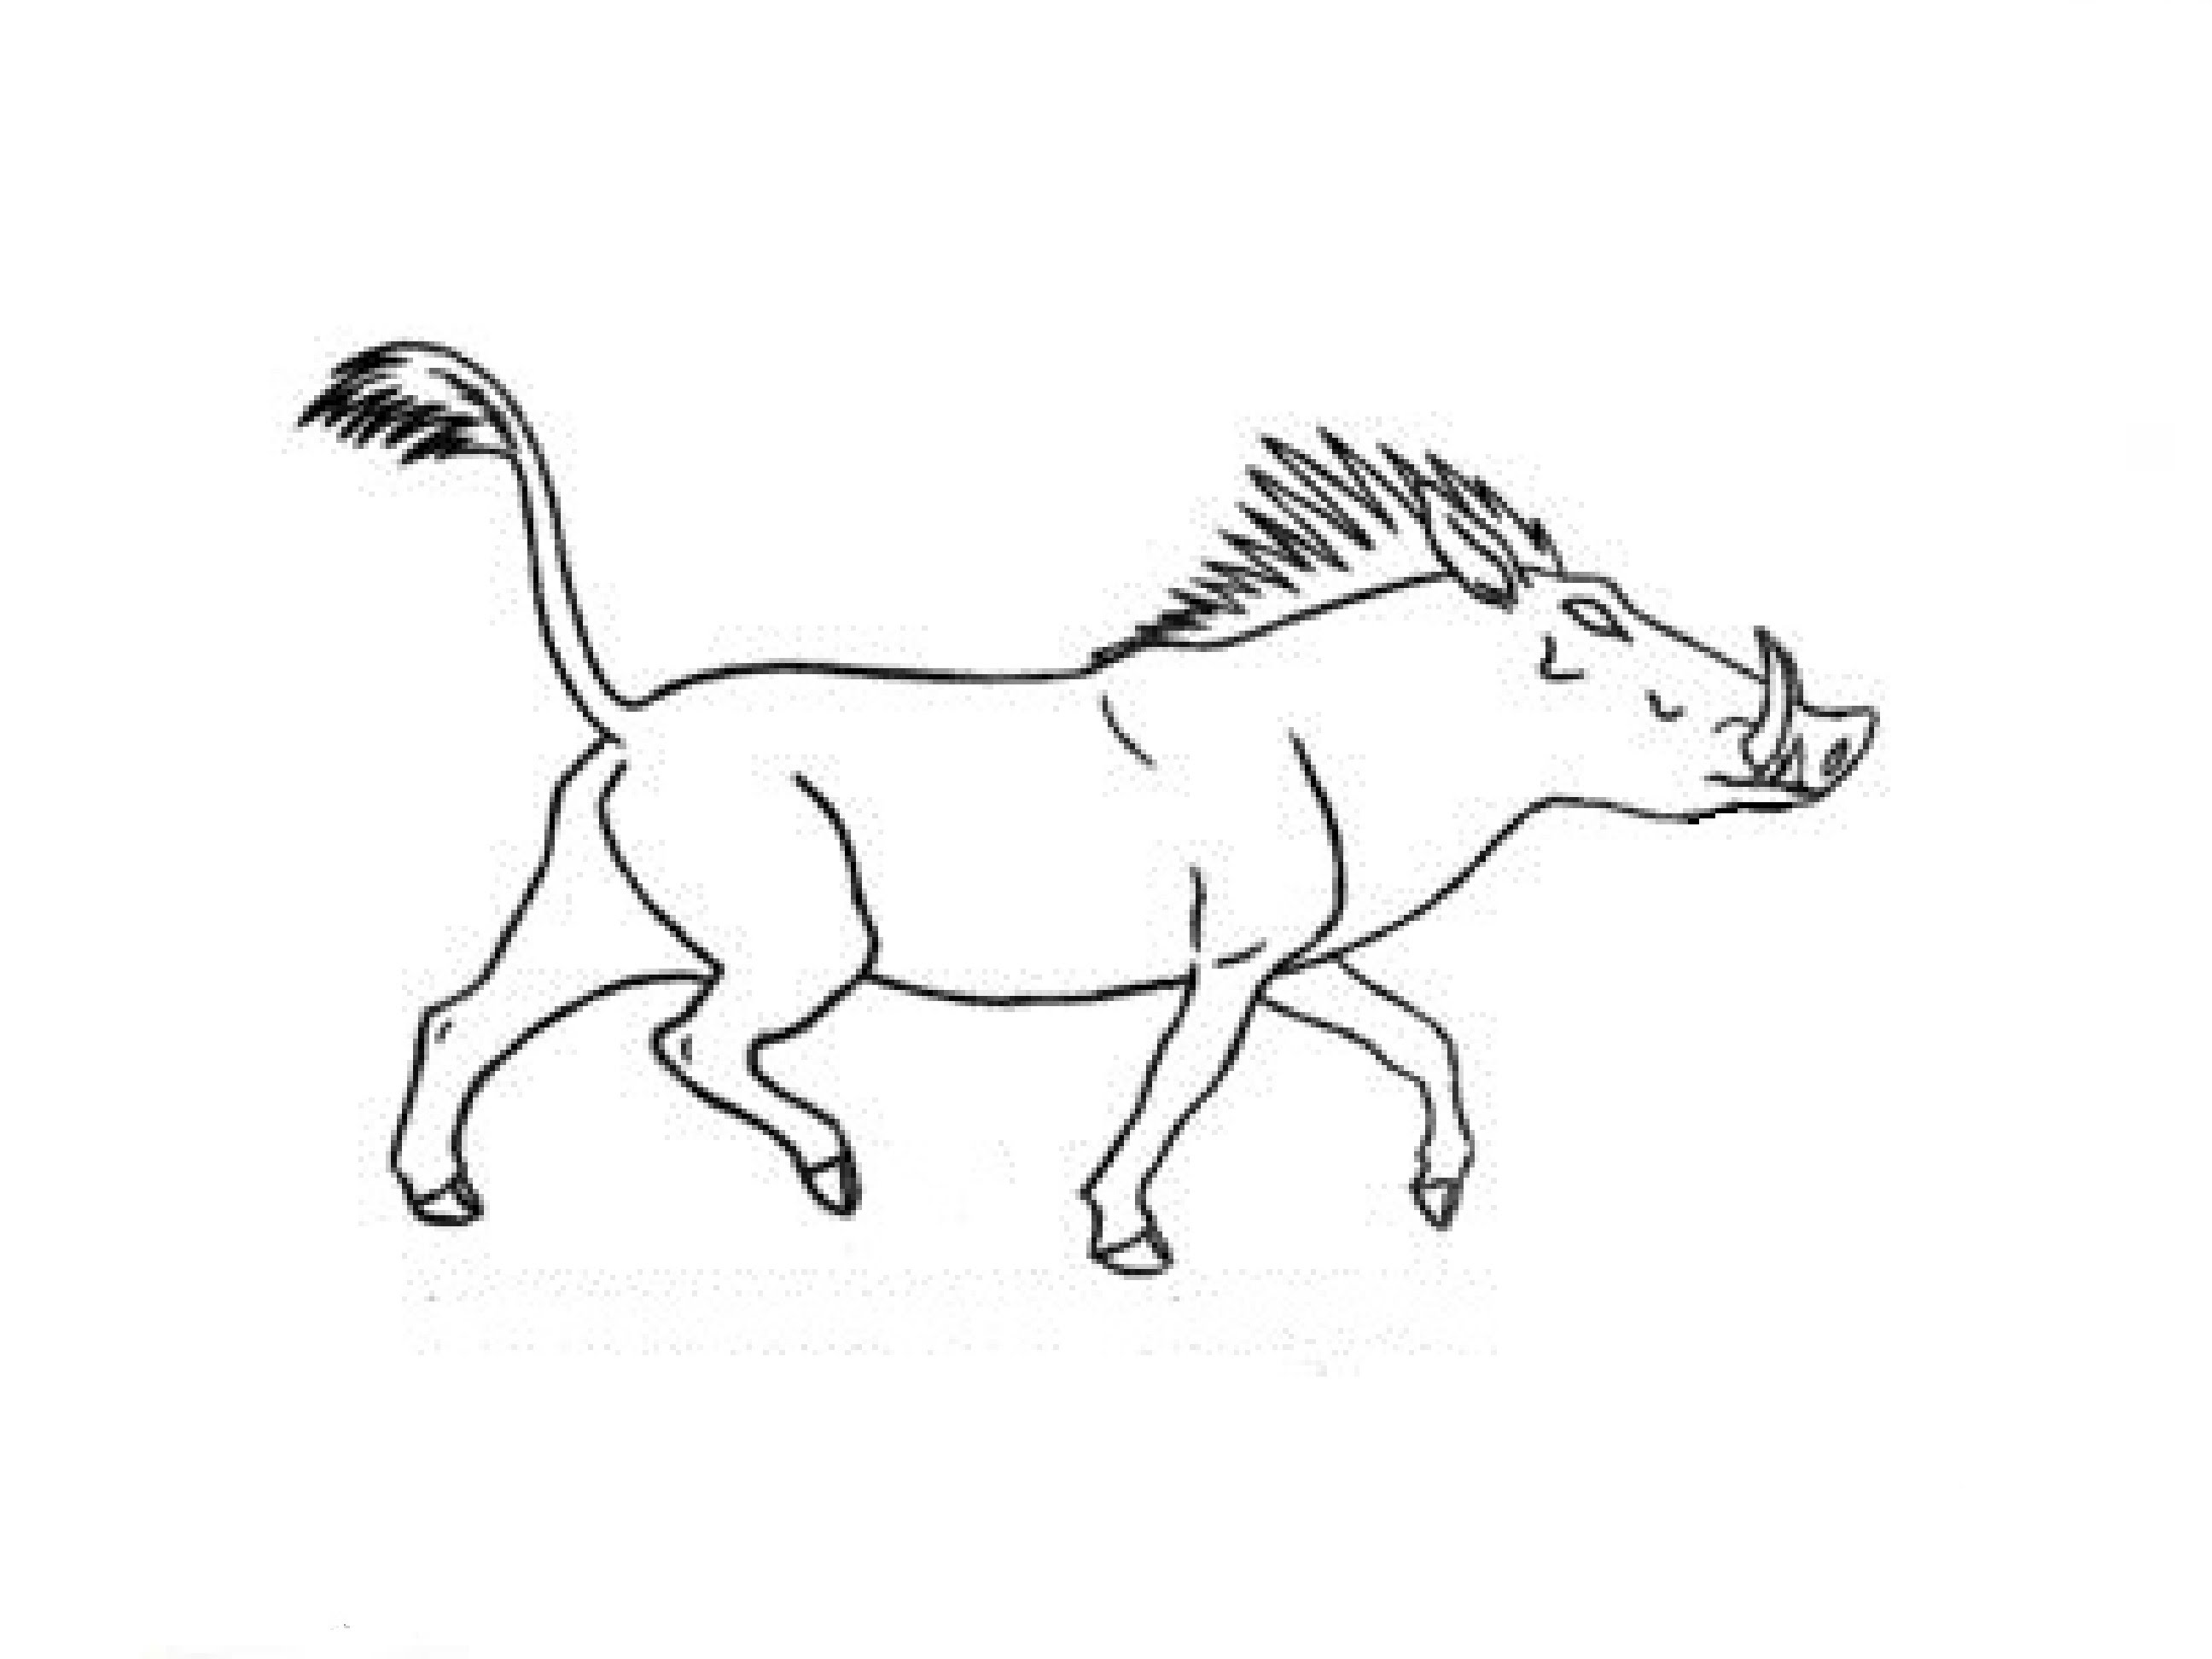 2592x1944 How To Draw A Boar